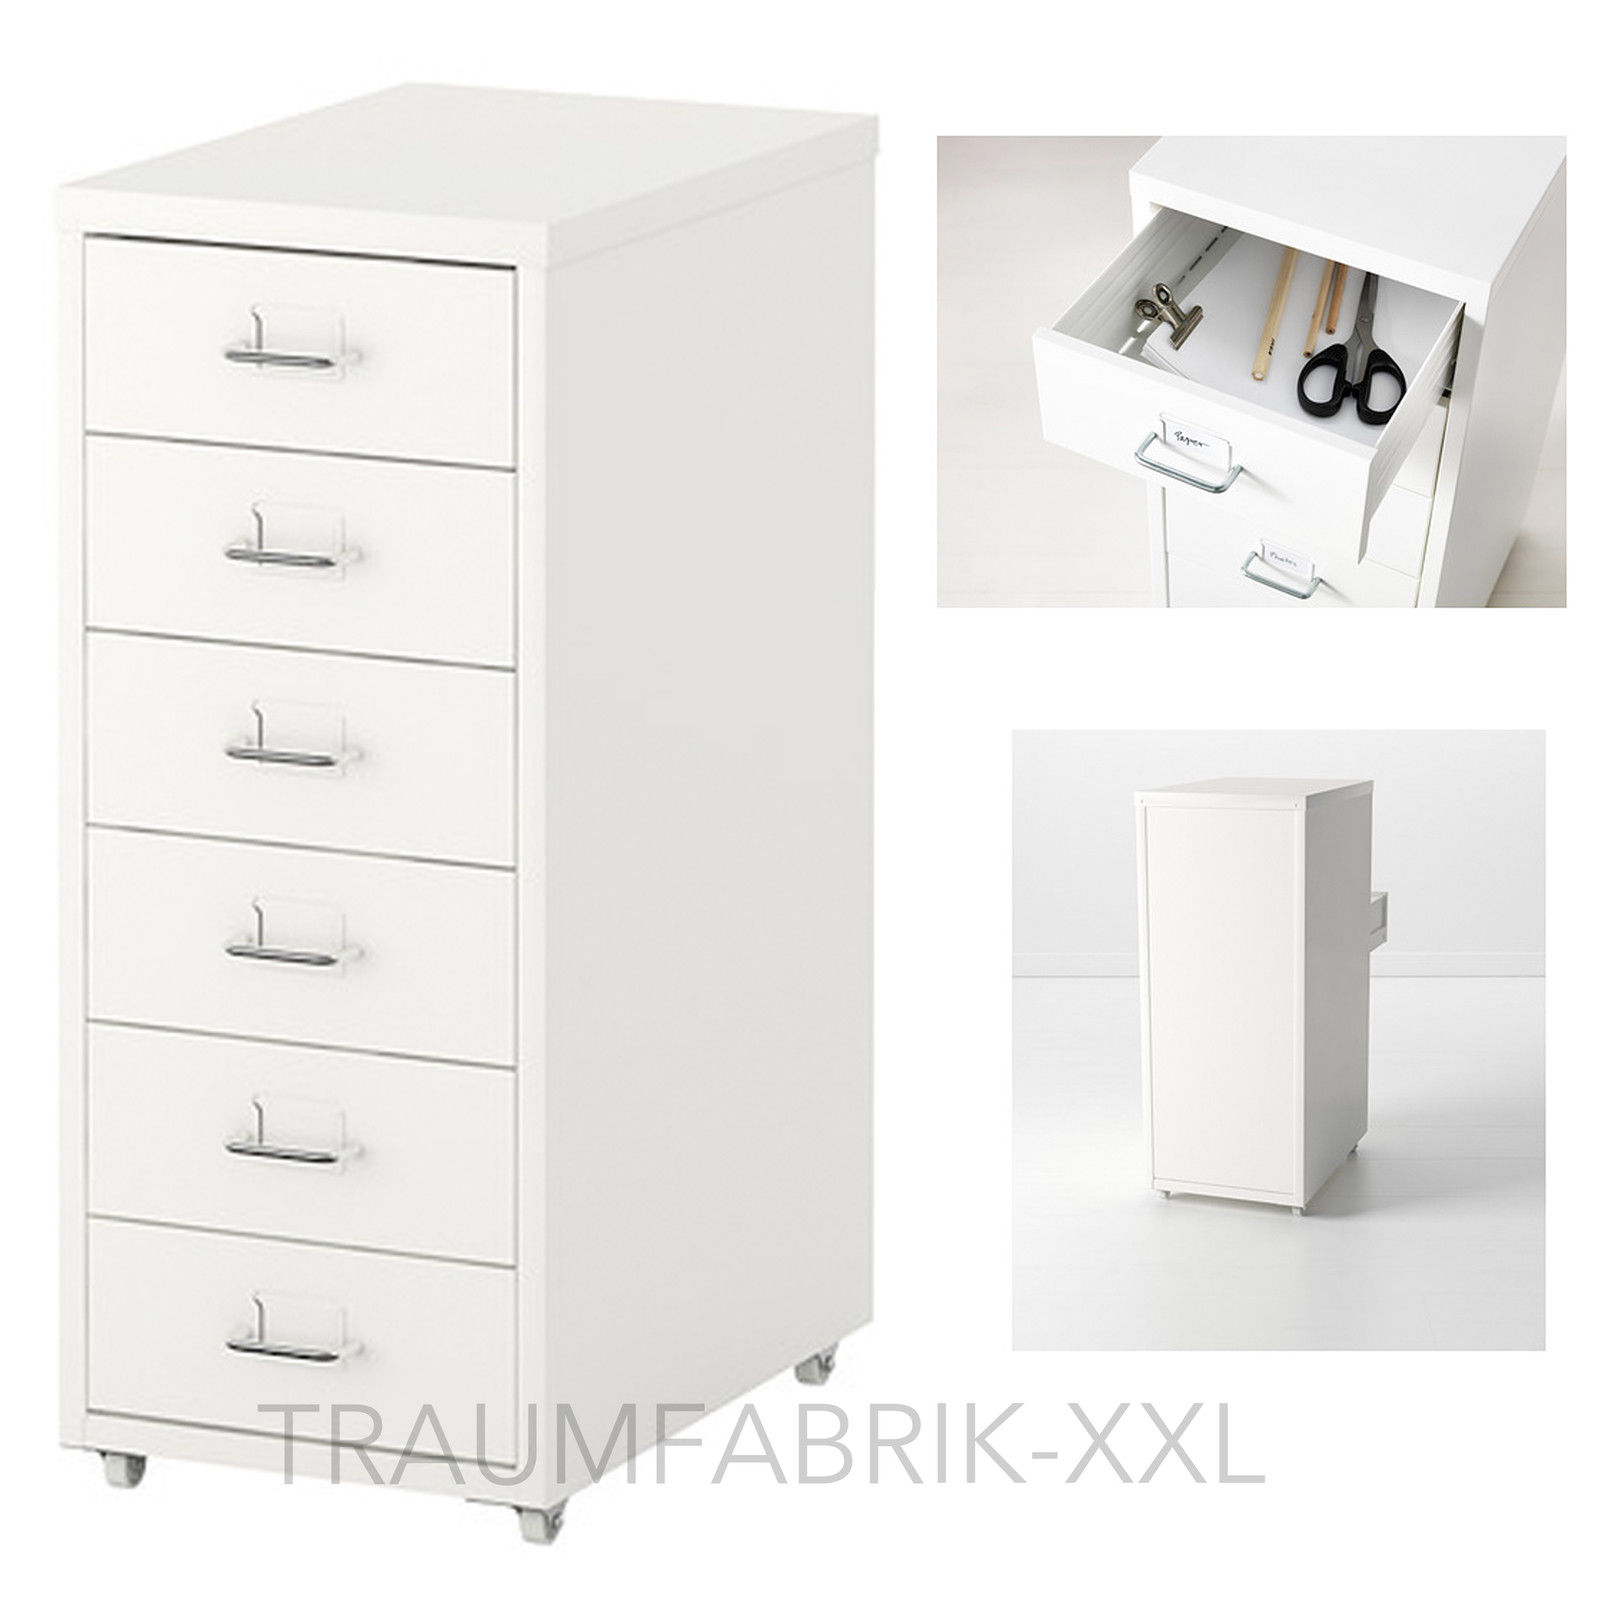 ikea schubladenelement rollcontainer b roschrank schrank schubladenschrank wei traumfabrik xxl. Black Bedroom Furniture Sets. Home Design Ideas